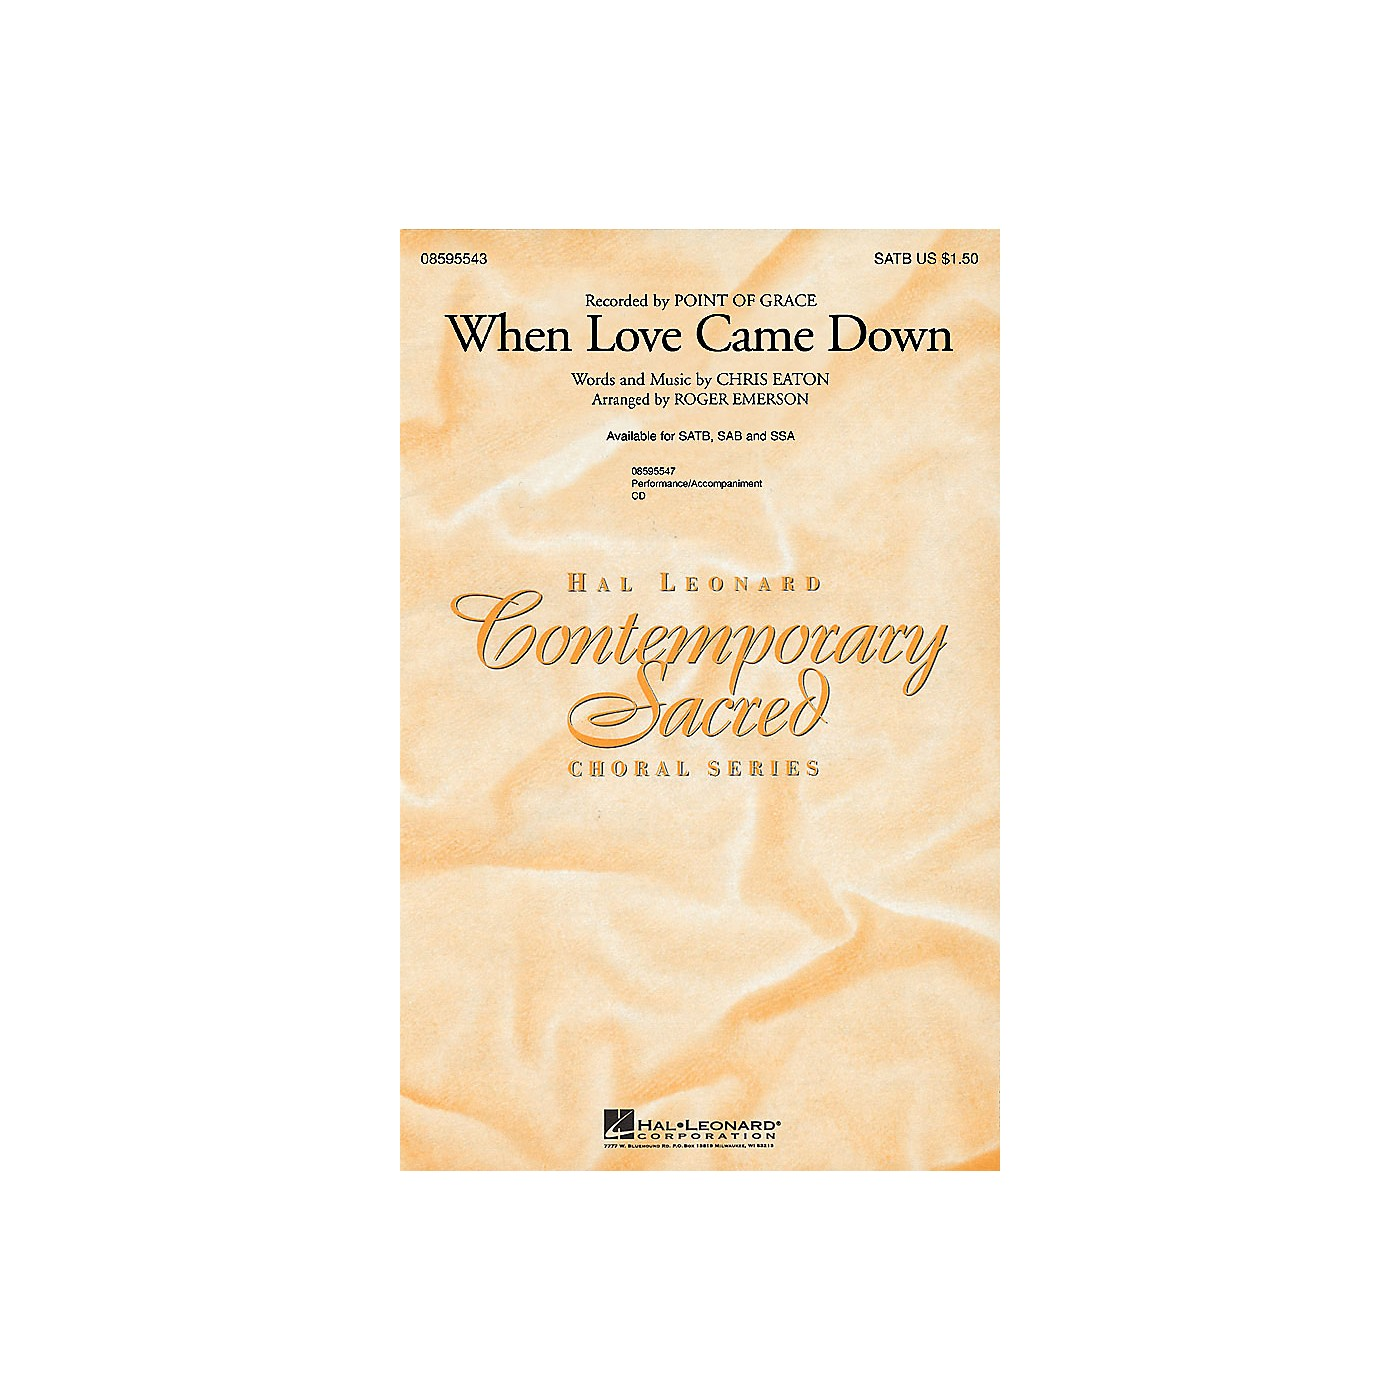 Hal Leonard When Love Came Down SATB by Point Of Grace arranged by Roger Emerson thumbnail